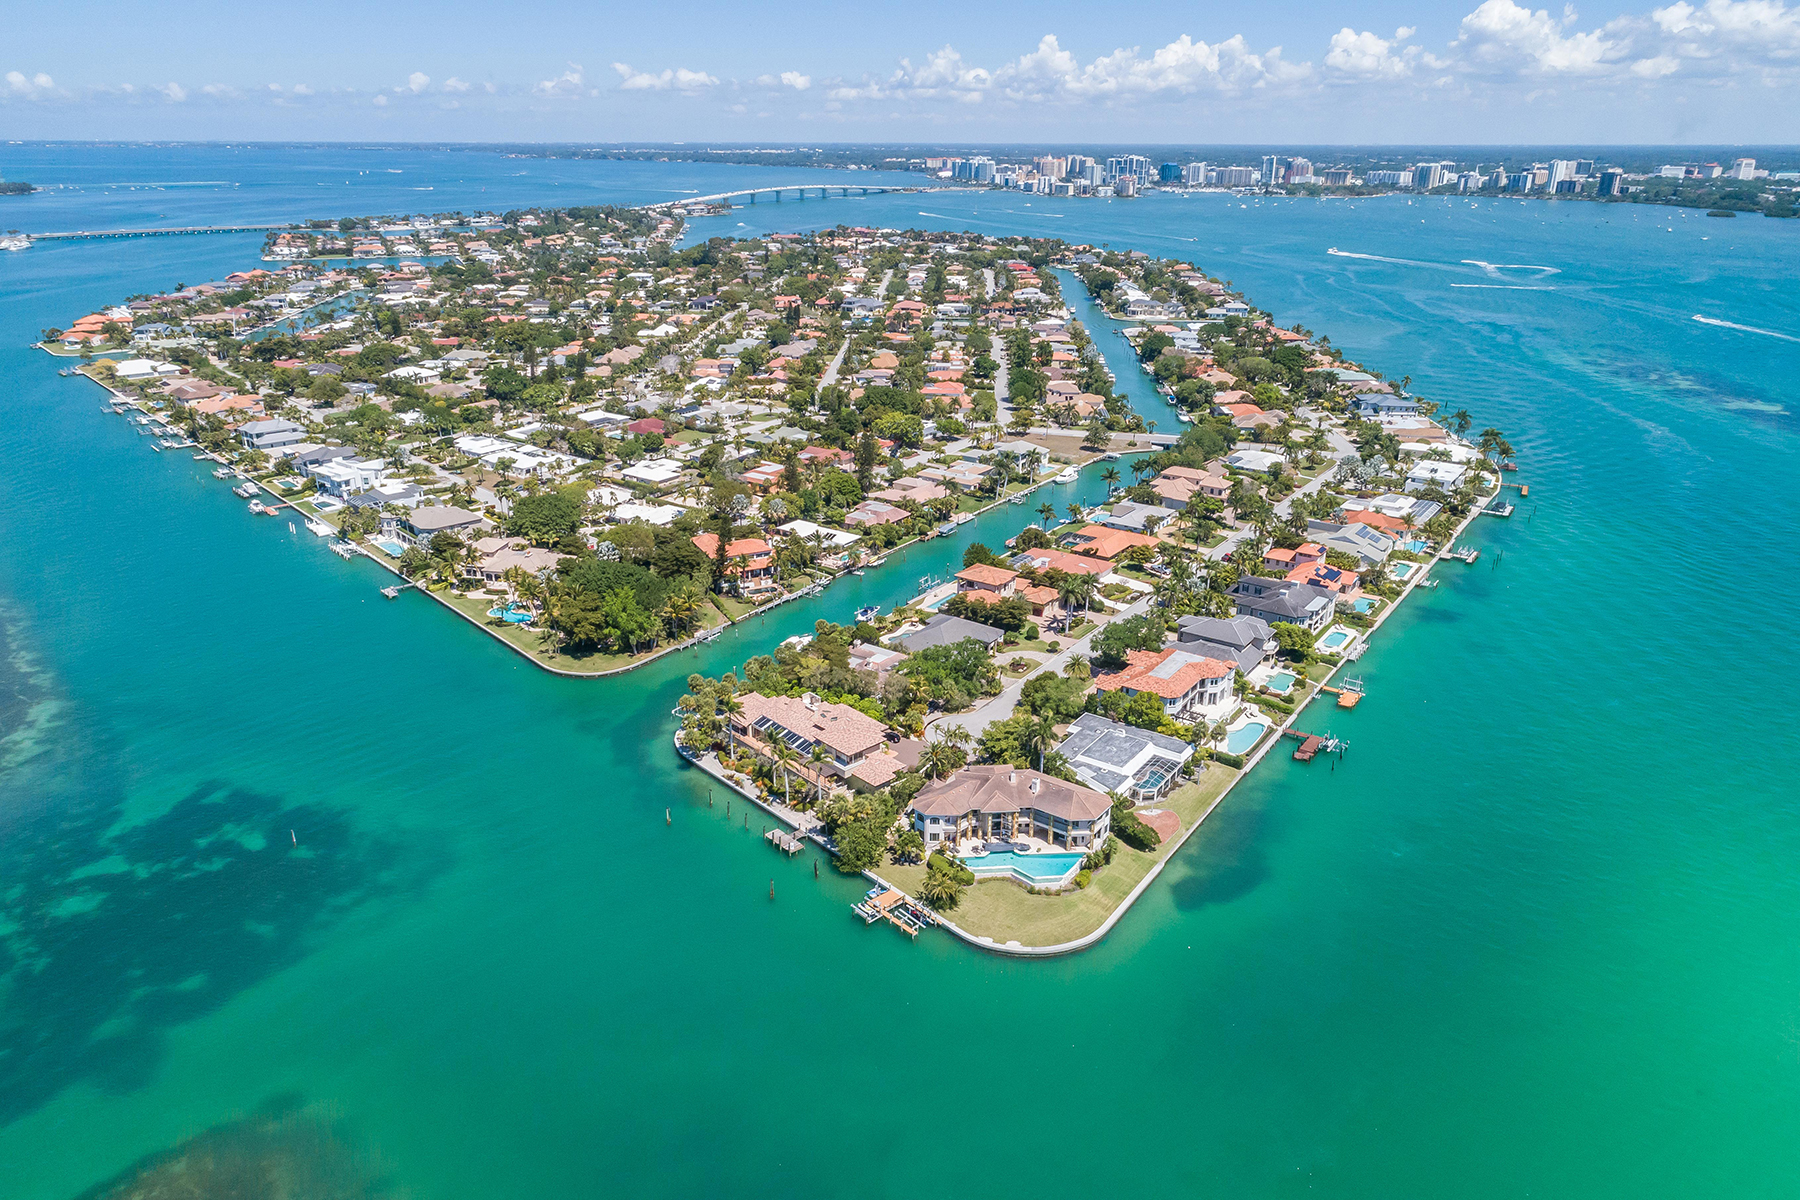 Single Family Home for Sale at 616 Mourning Dove Dr , Sarasota, FL 34236 616 Mourning Dove Dr, Sarasota, Florida 34236 United States